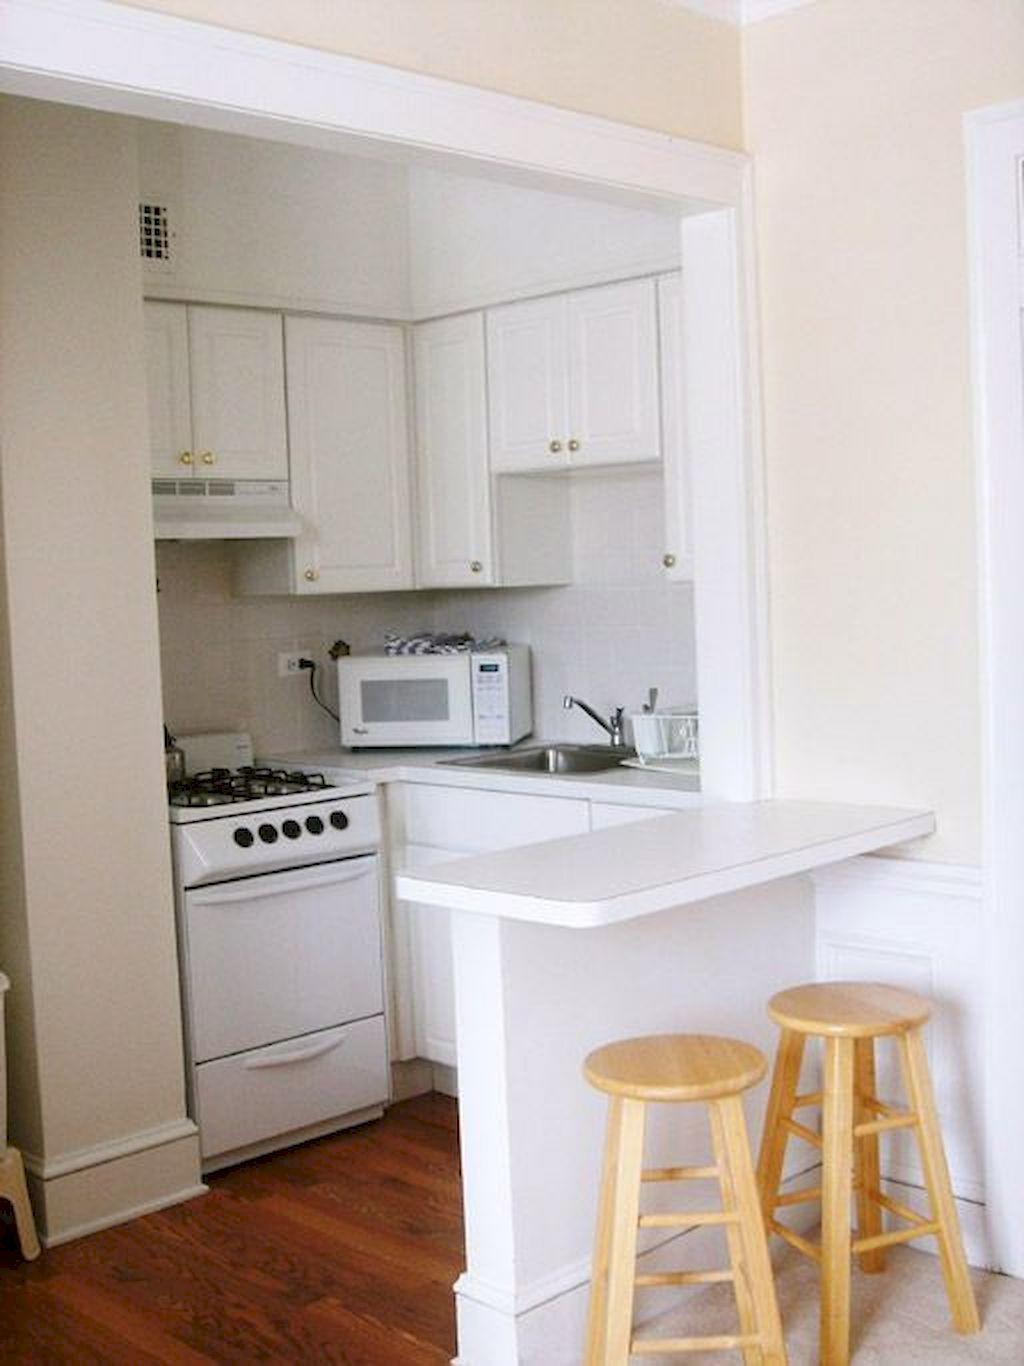 Pin by Daria Corbin on daria | Small apartment kitchen ...